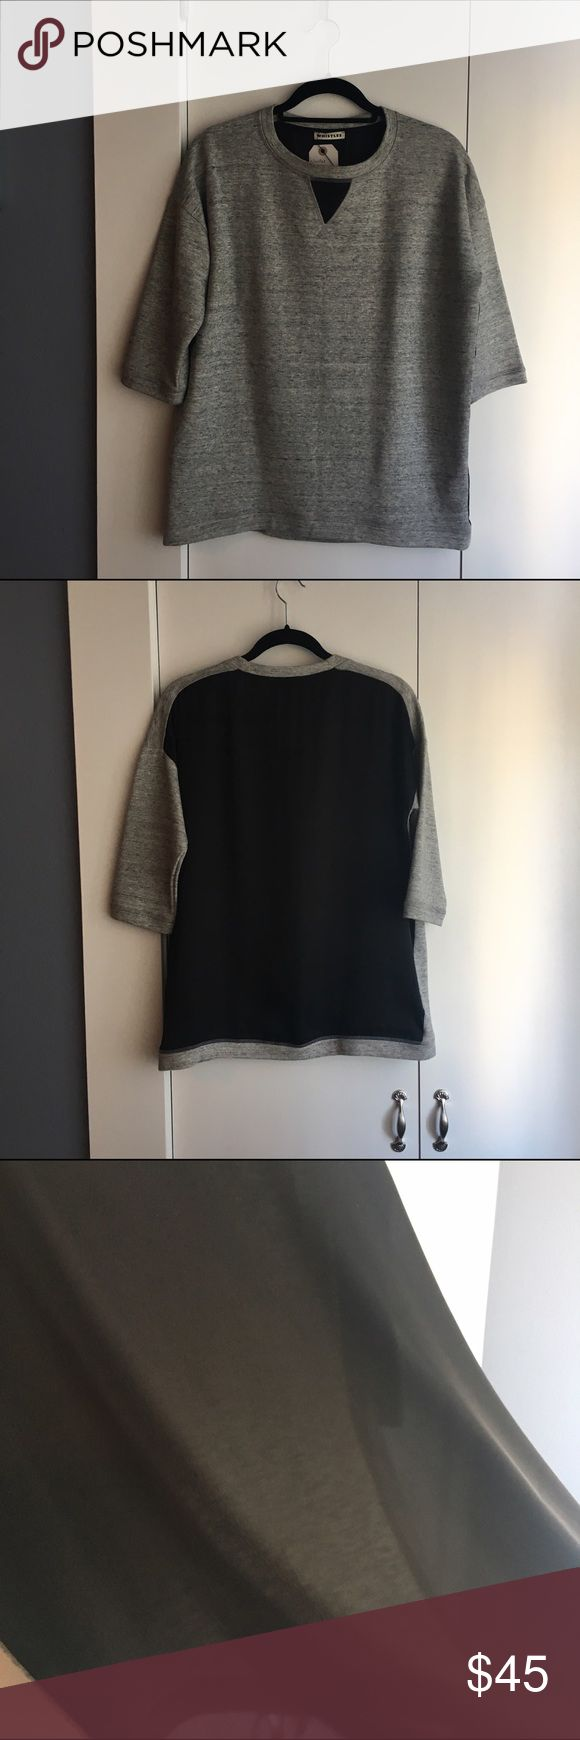 Oversized sweatshirt with sheer black back Heather gray front and rib trim, 3/4 sleeve, boxy with sheer back. Purchased in London from Whistles Whistles Tops Blouses